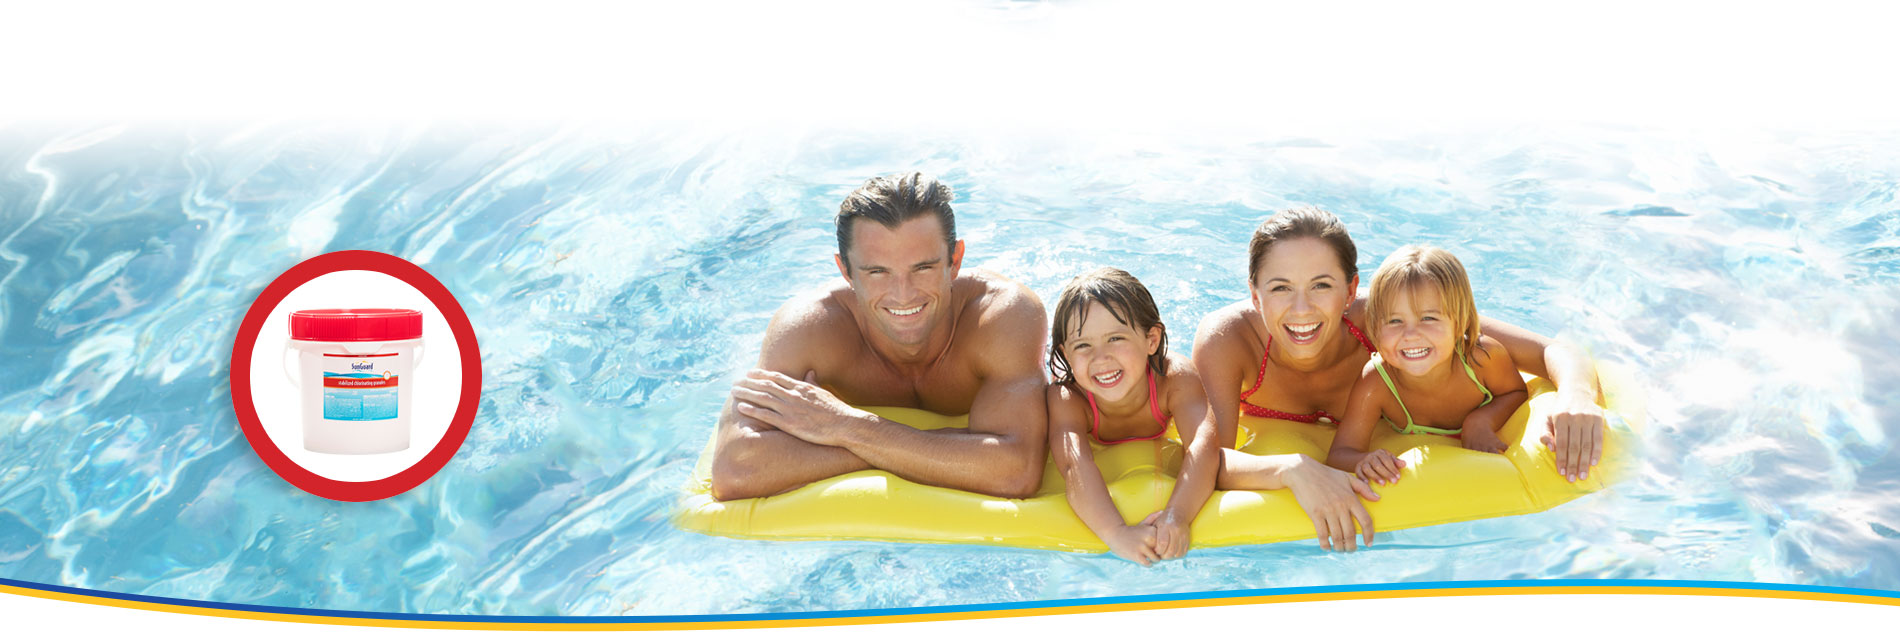 Multitabs Für Pool Sunguard Sanitizers Swimming Pool Maintenance And Spa Care